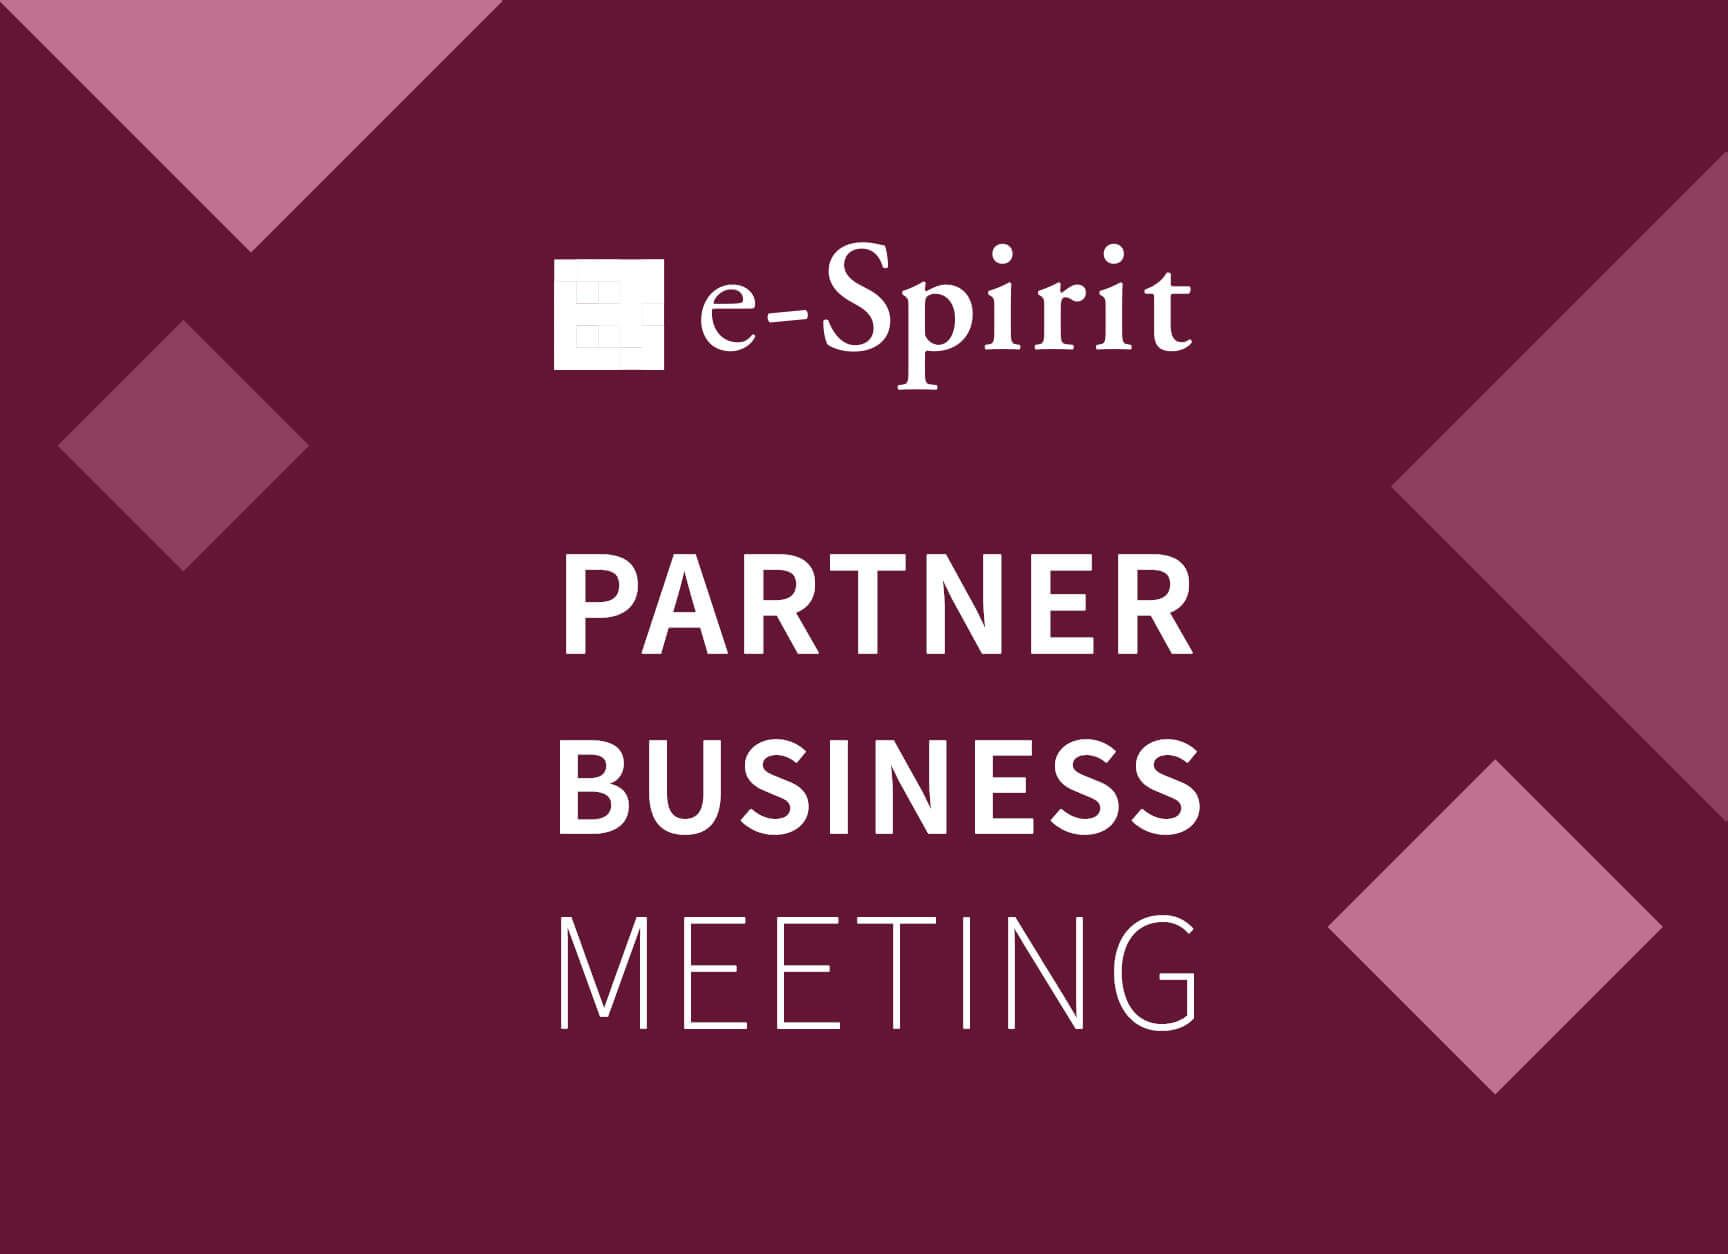 diva-e beim e-Spirit Partner Business Meeting